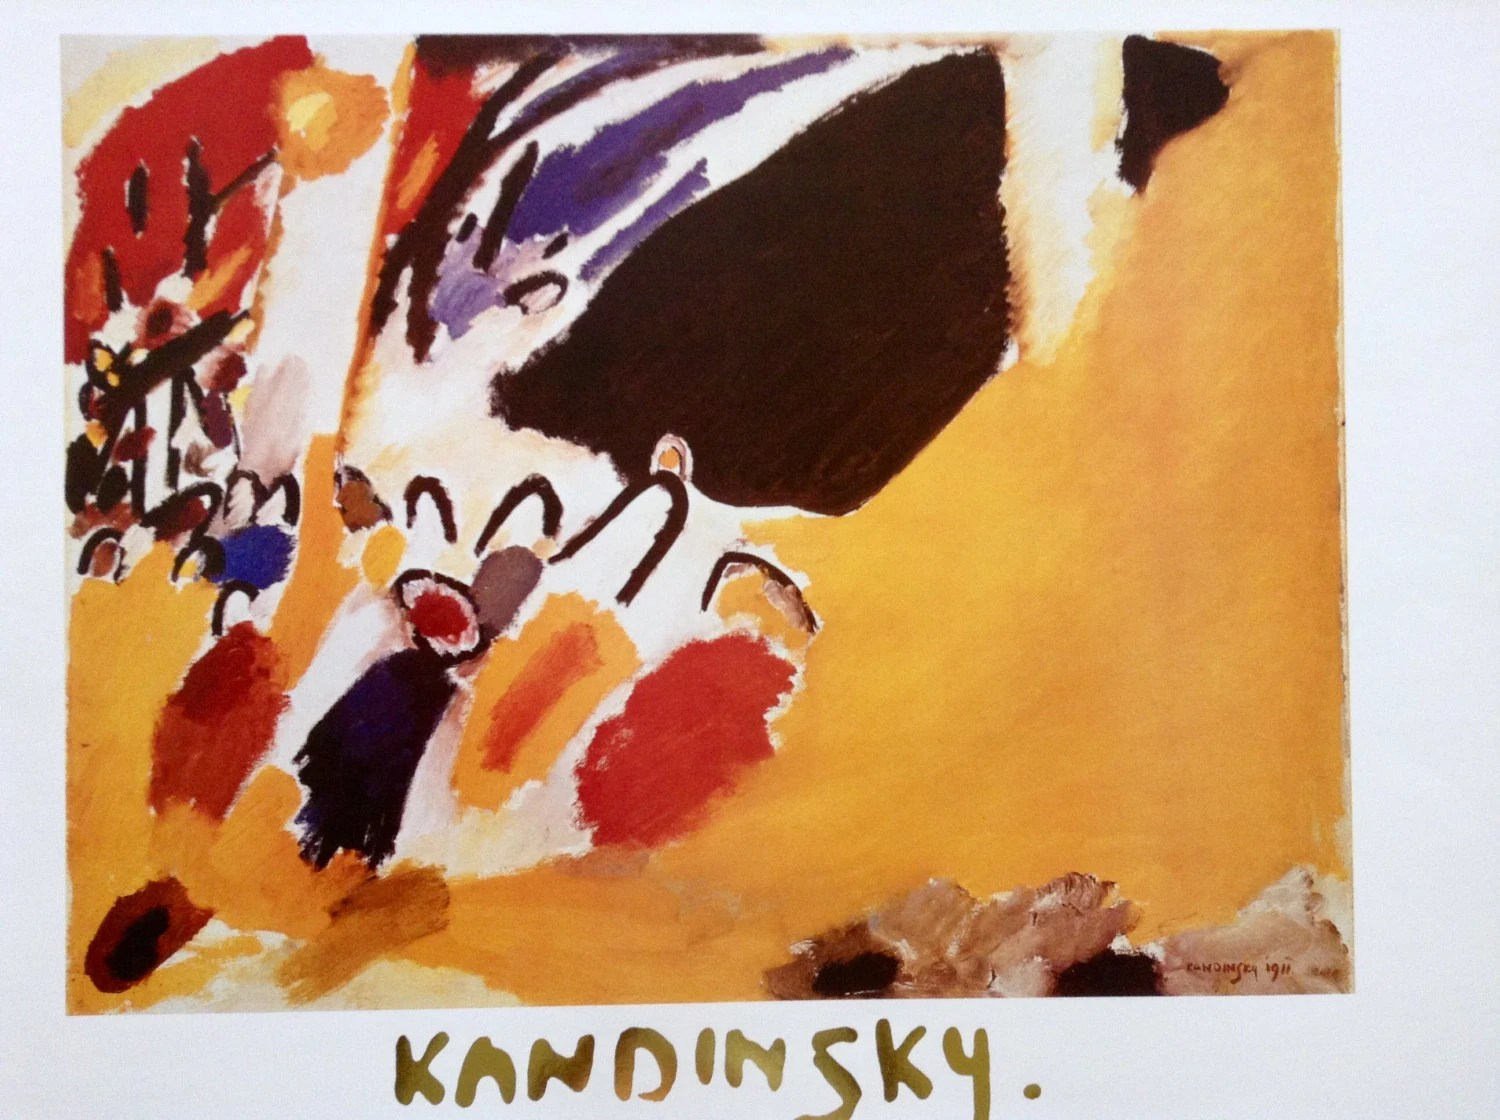 Della Pittura On Painting Kandinsky Print Impression 111 Concert Created 1911 Serie Maestri Della Pittura N 158 Abstract Art Vintage Print Poster